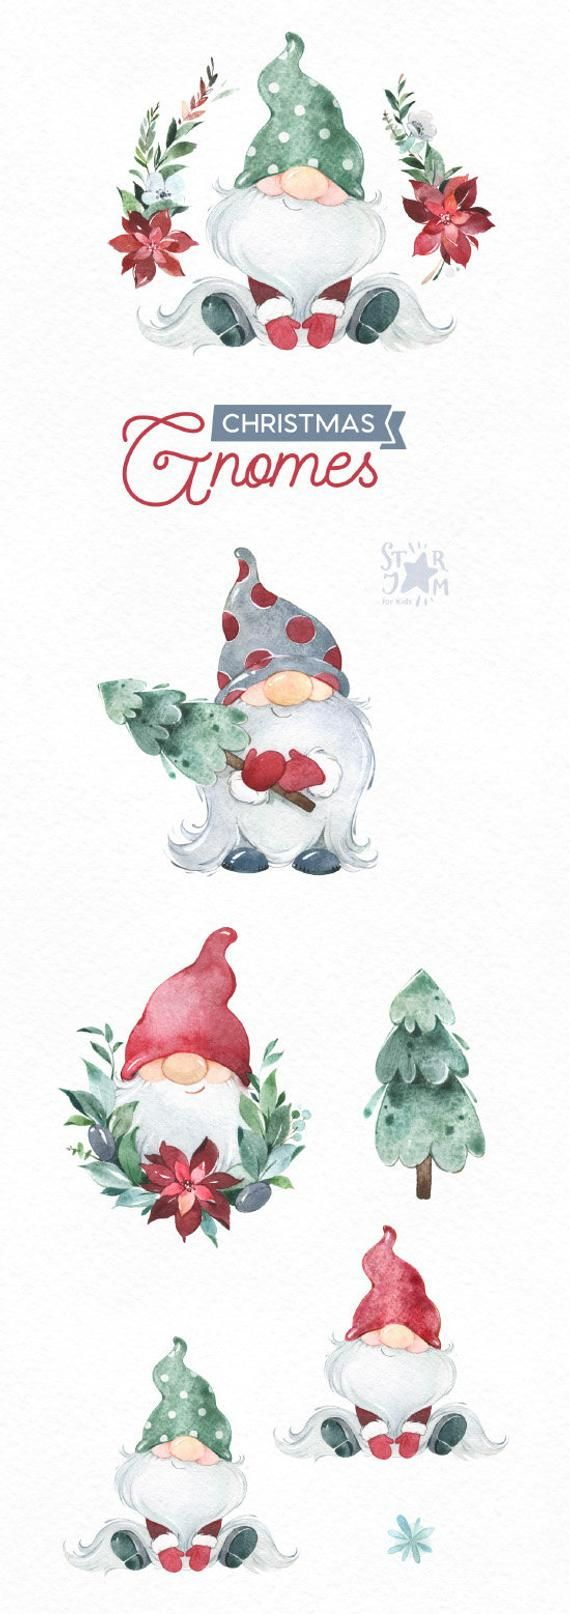 Christmas Gnomes Watercolor clipart, Nordic, Scandinavian, magical, winter, tree, snow, fairytale, holiday, xmas, baby, cards, dwarf, wreath